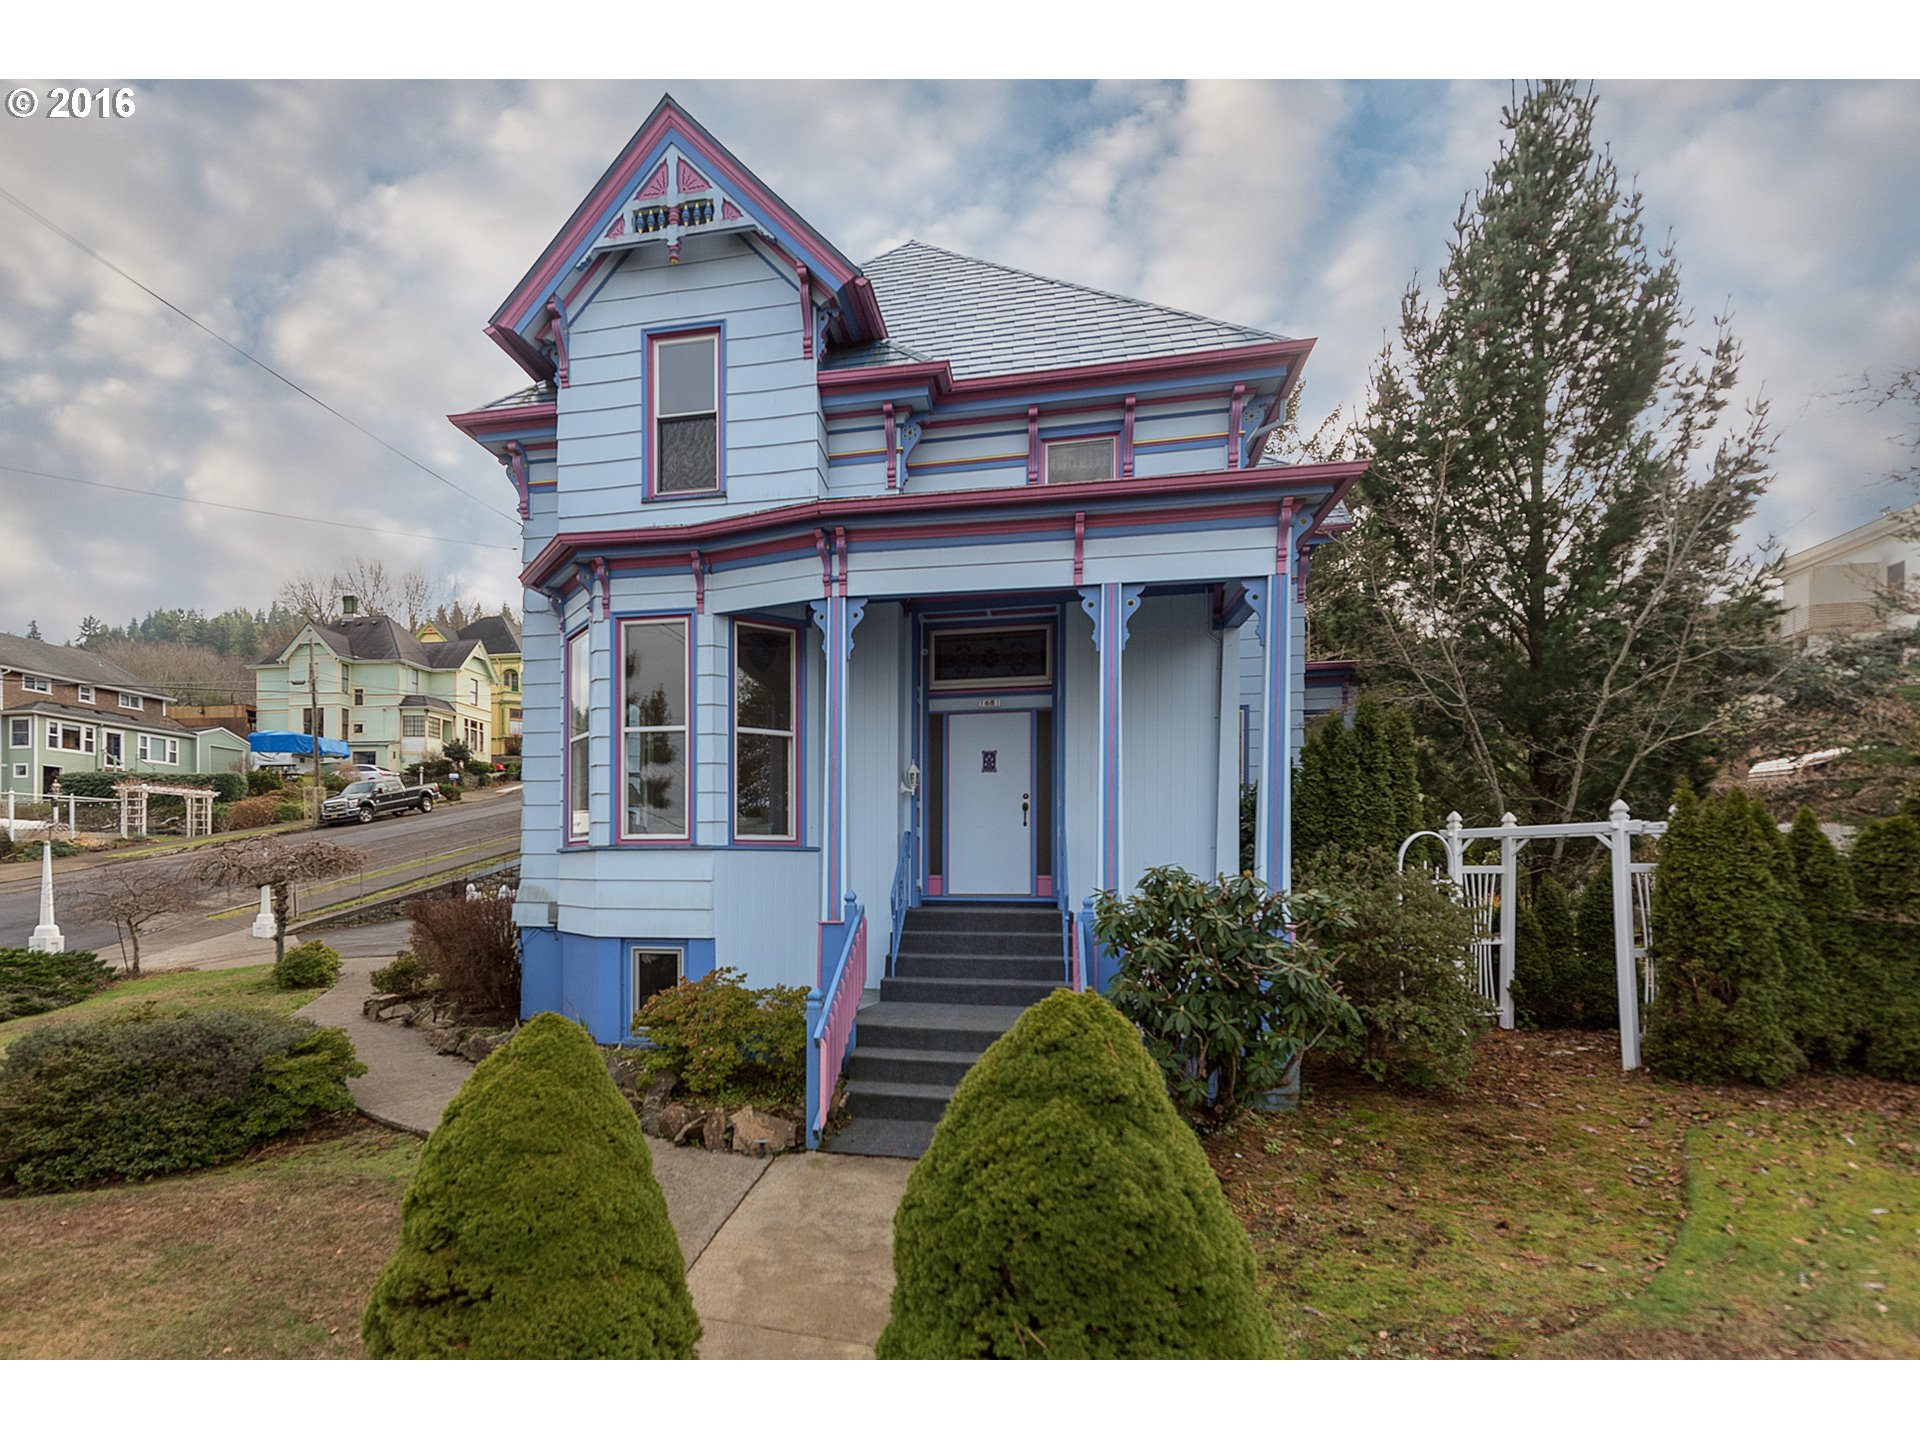 1681 Franklin Ave, Astoria, OR